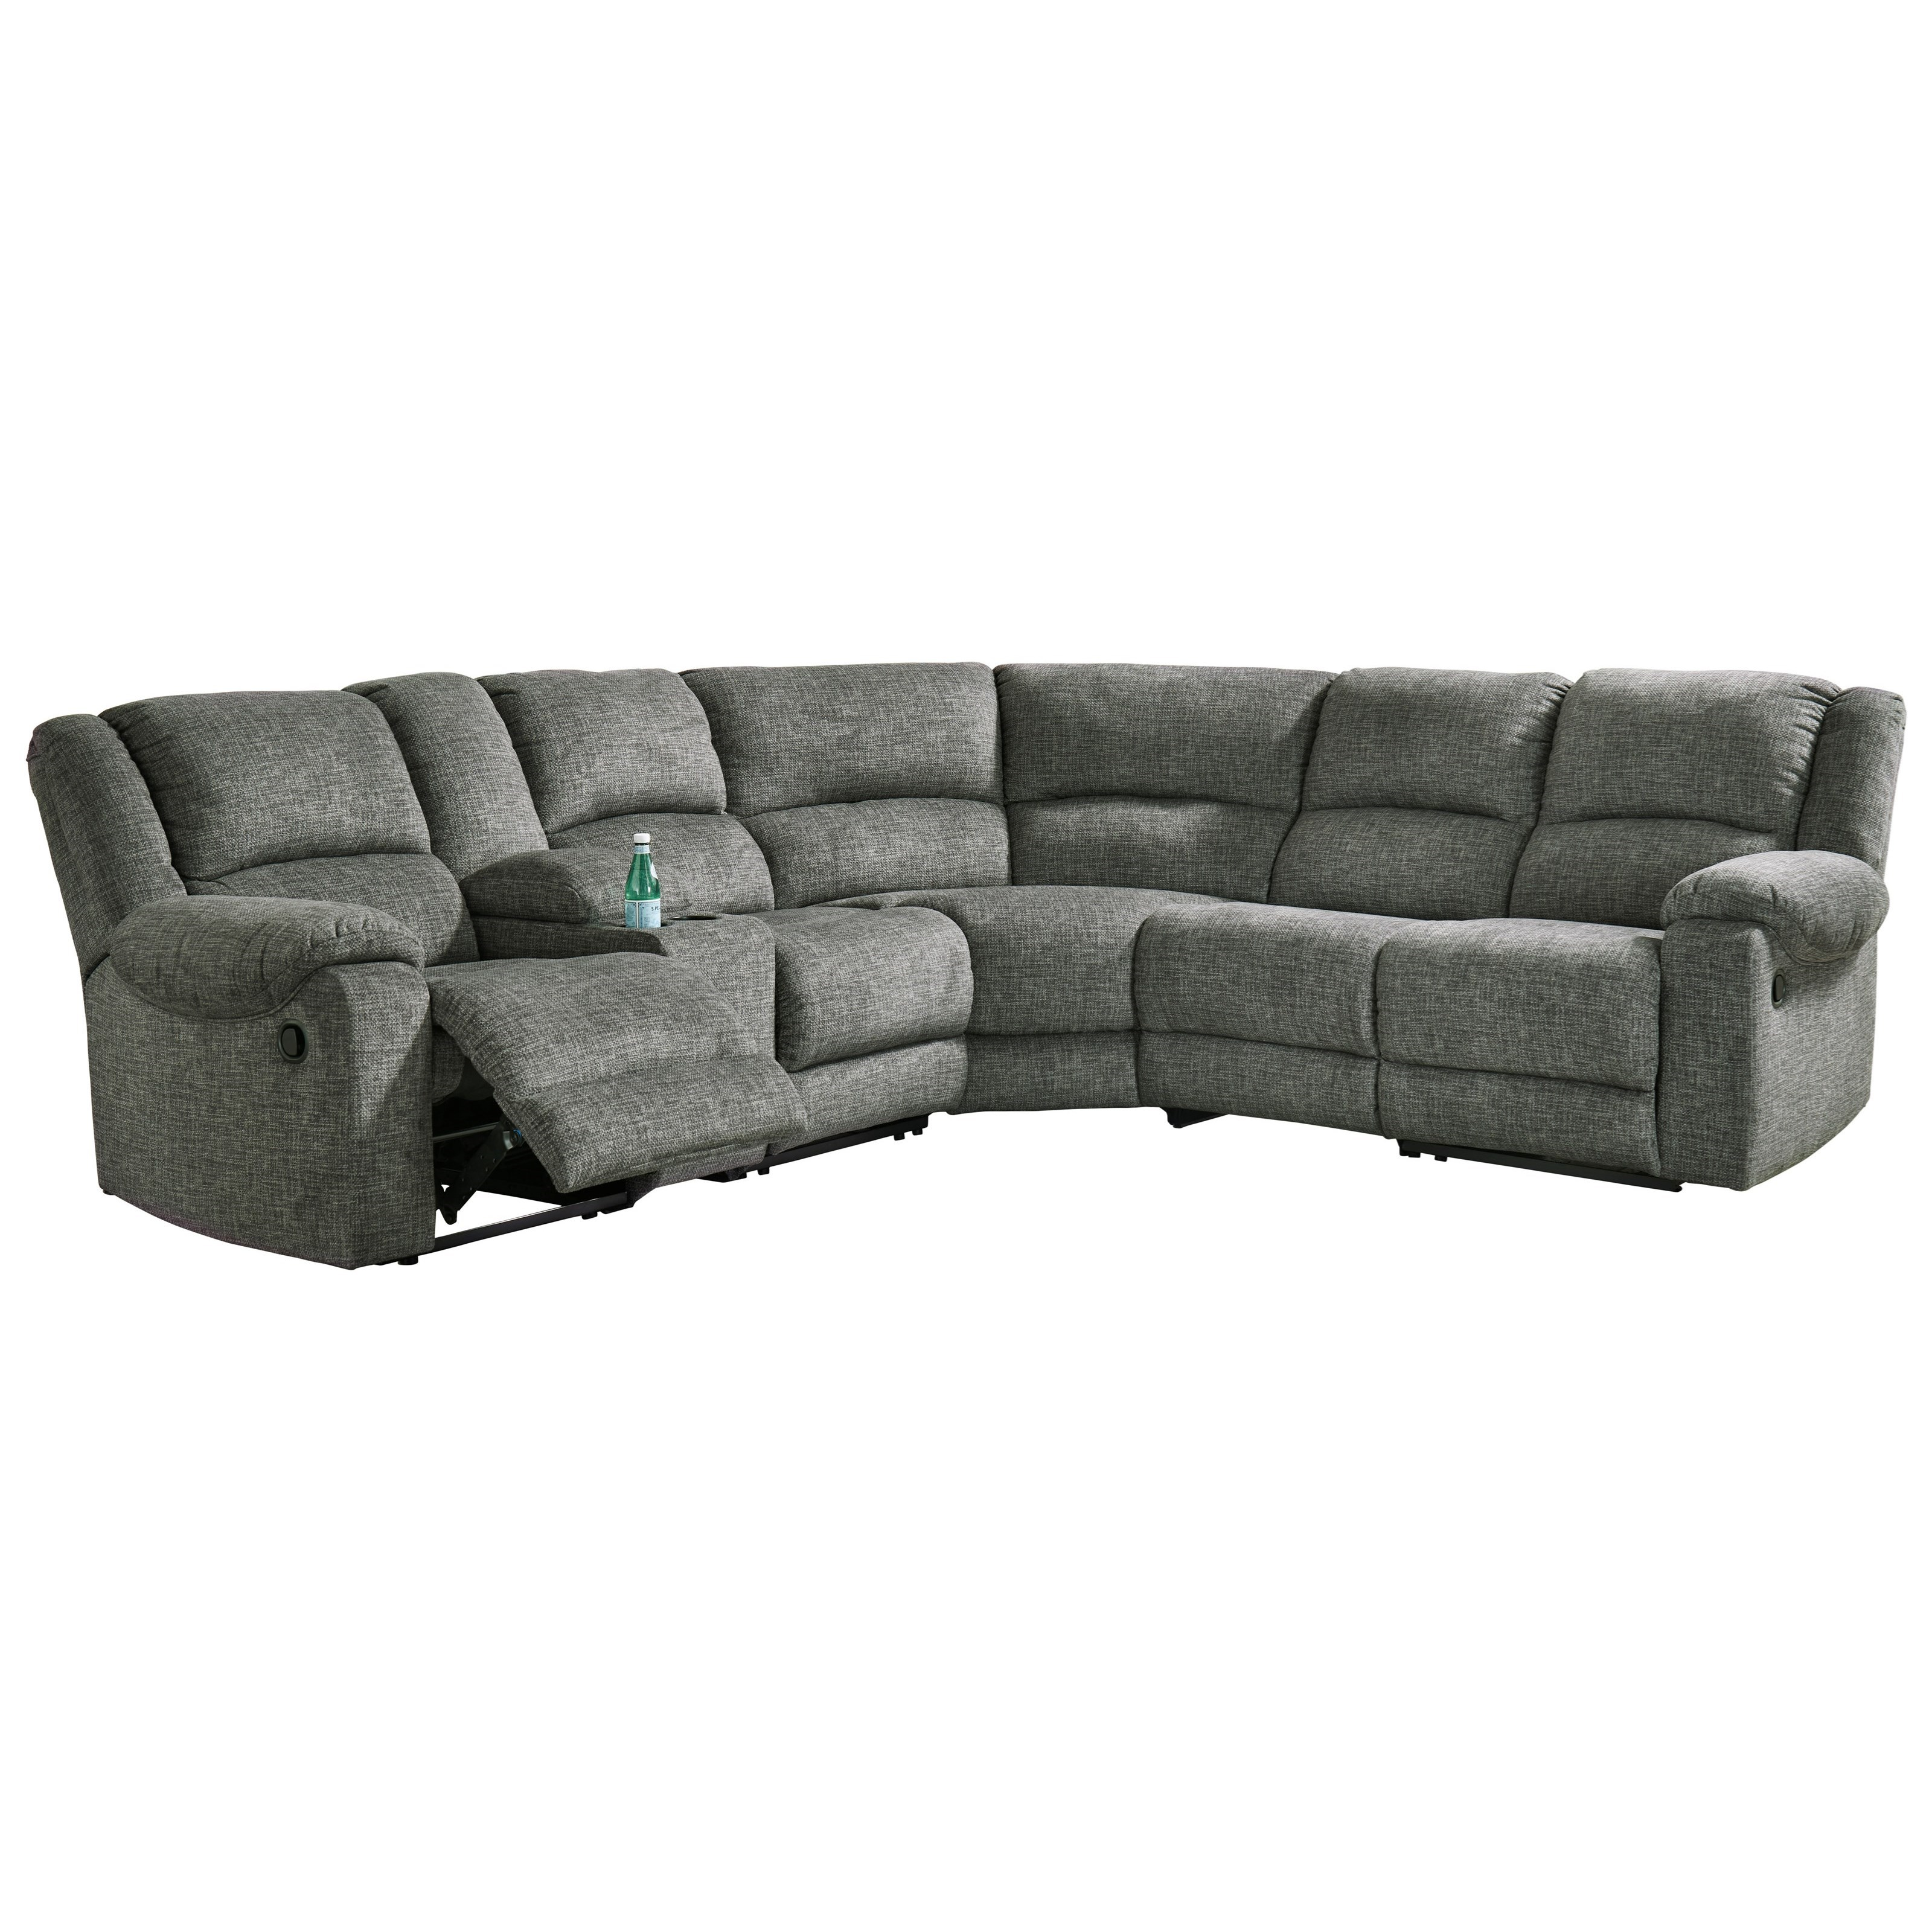 Goalie 6-Piece Reclining Sectional by Ashley Signature Design at Rooms and Rest